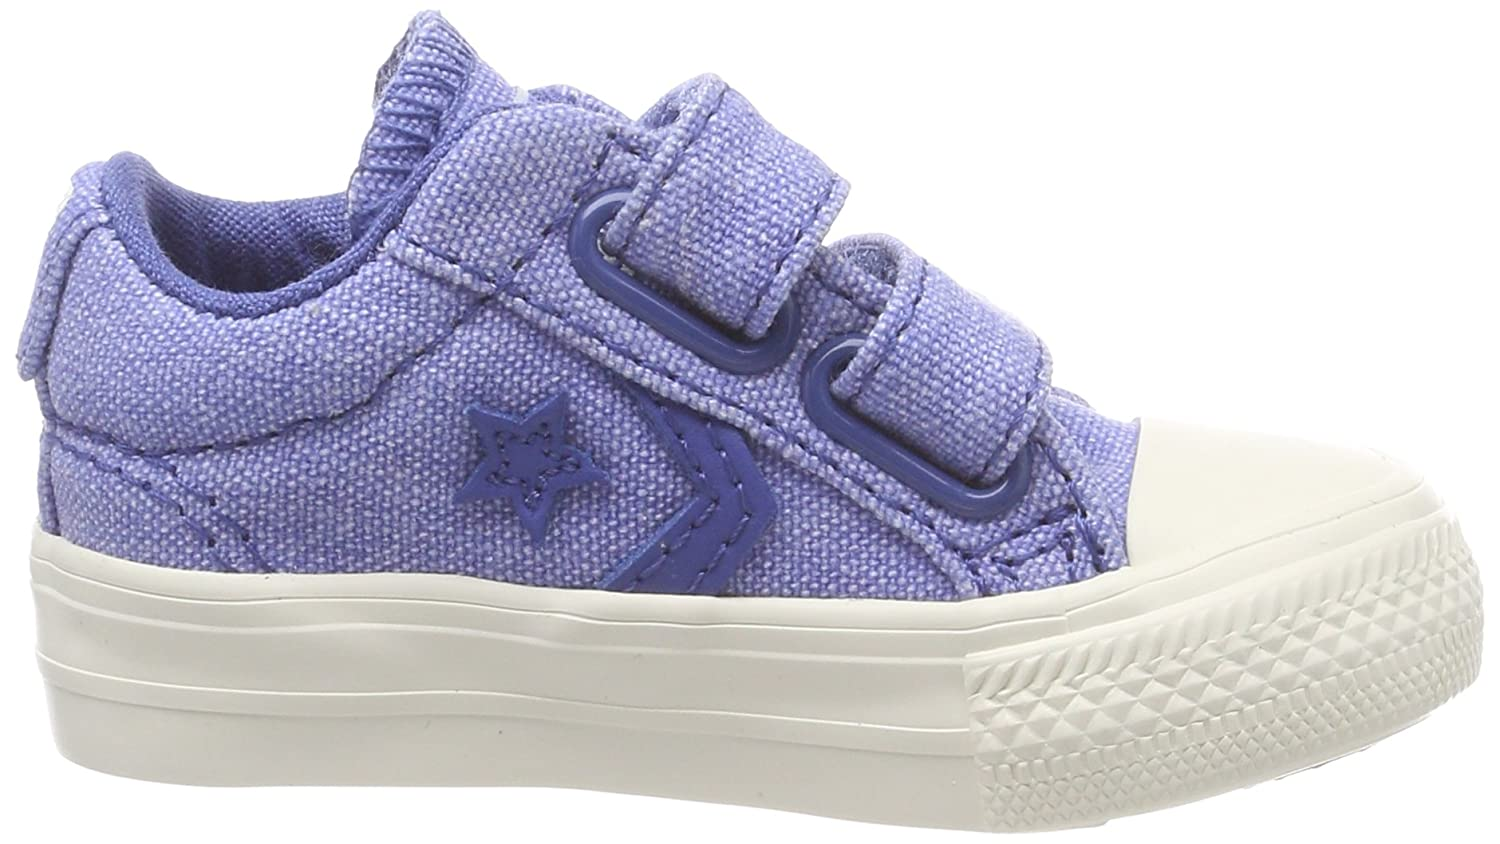 Converse Unisex Baby Star Player EV 2V OX Nightfall Blue Hausschuhe, Blau (Nightfall Blue/Nightfall Blue 441), 21 EU